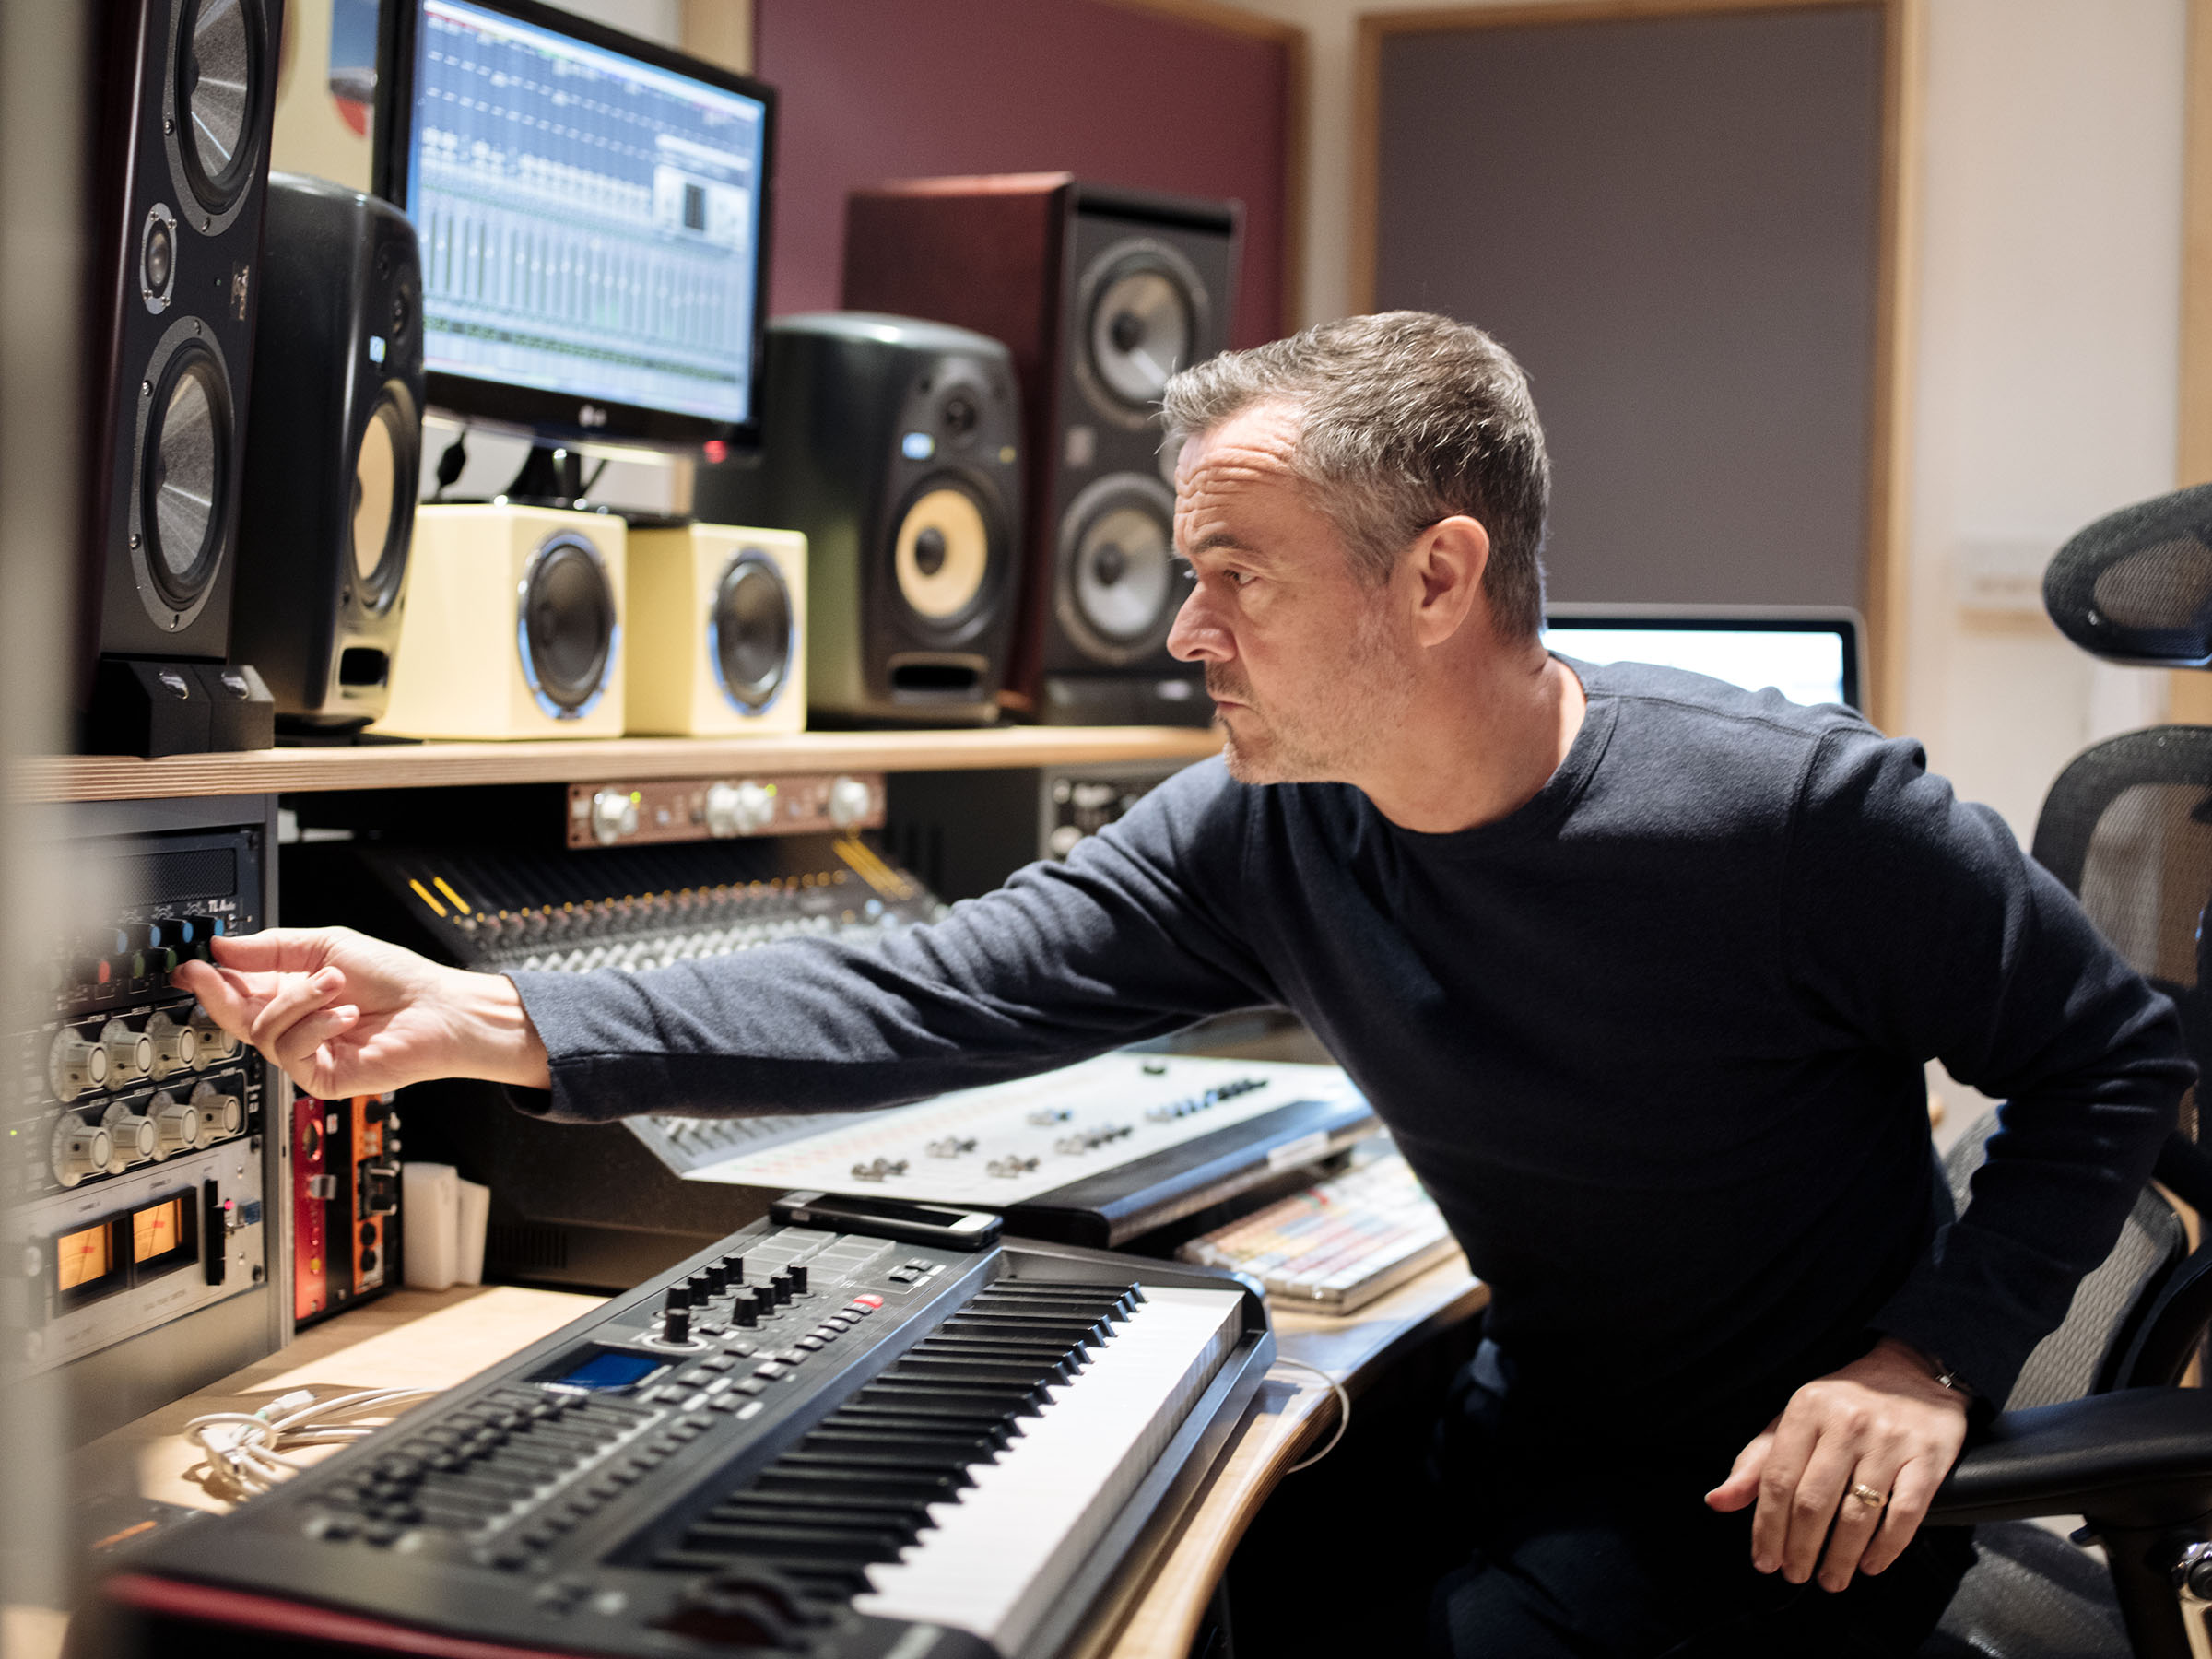 INTERVIEW: Stephen Street on working with The Smiths, Blur & Joining Bradford 2